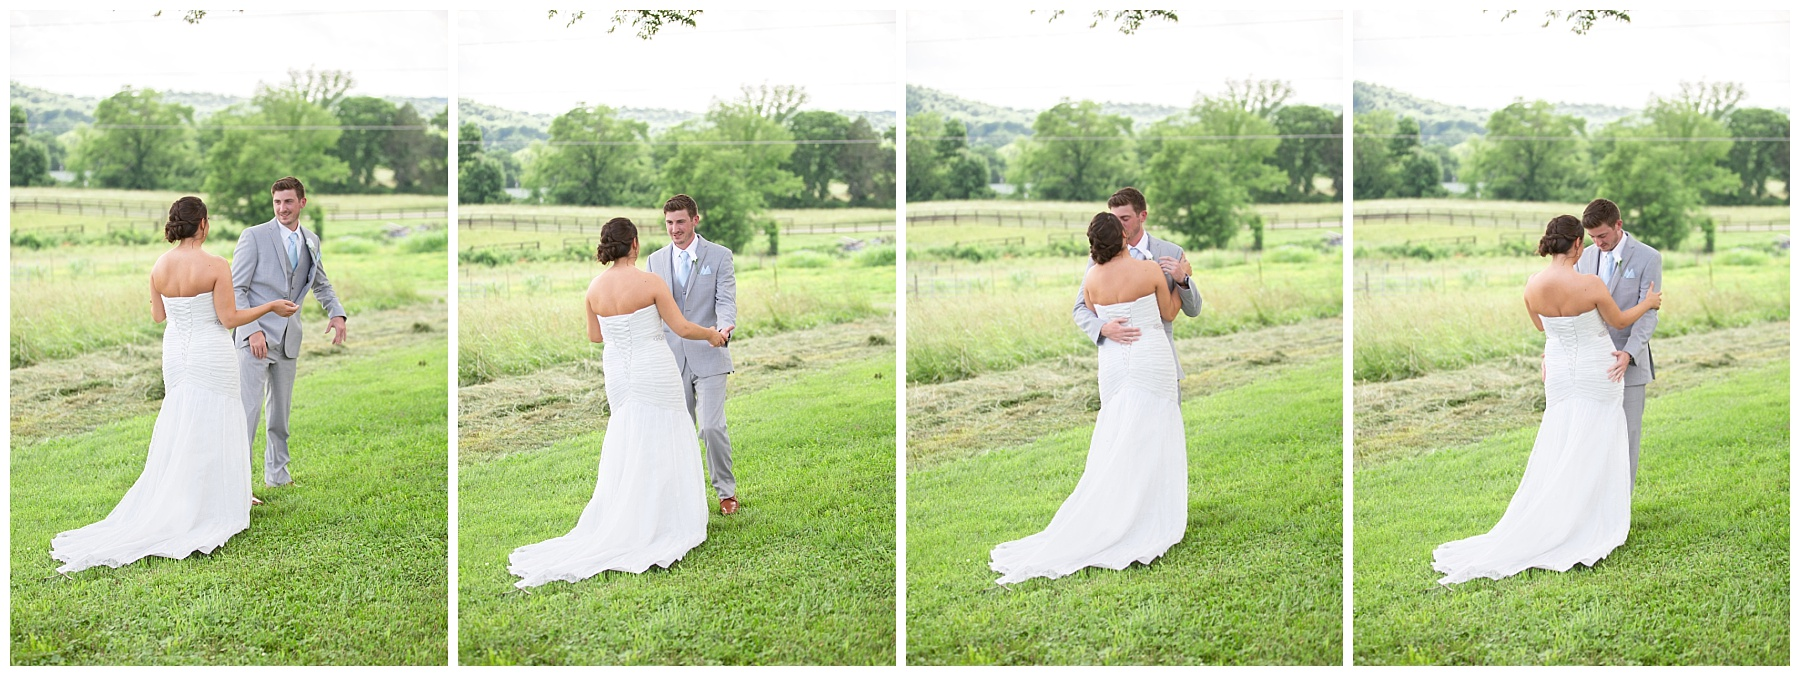 Gallatin Wedding - First Look - Rock Creek Farm